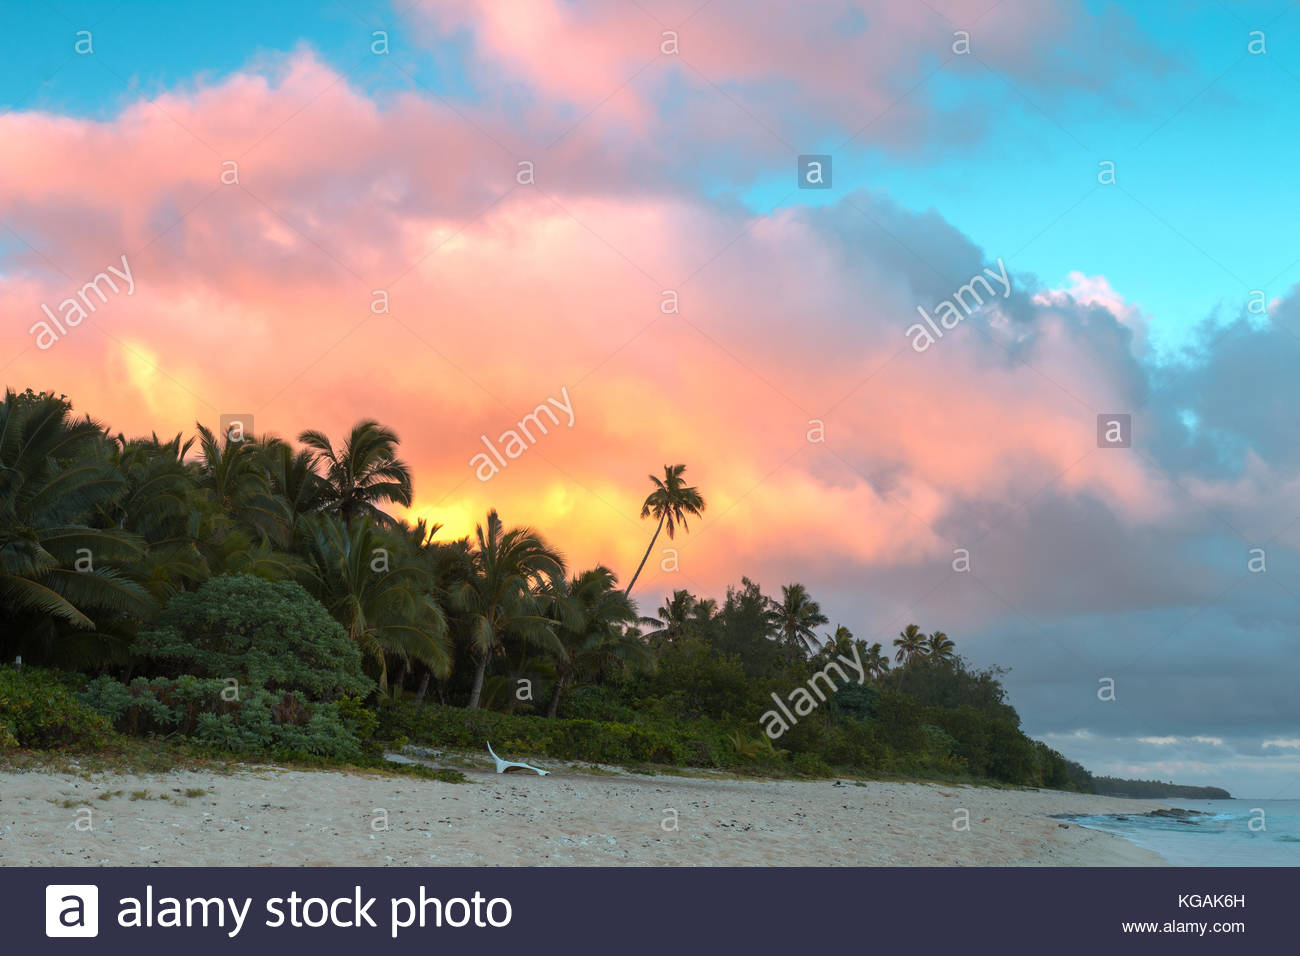 Sunrise on Tongatapu Island, Kingdom of Tonga - Stock Image